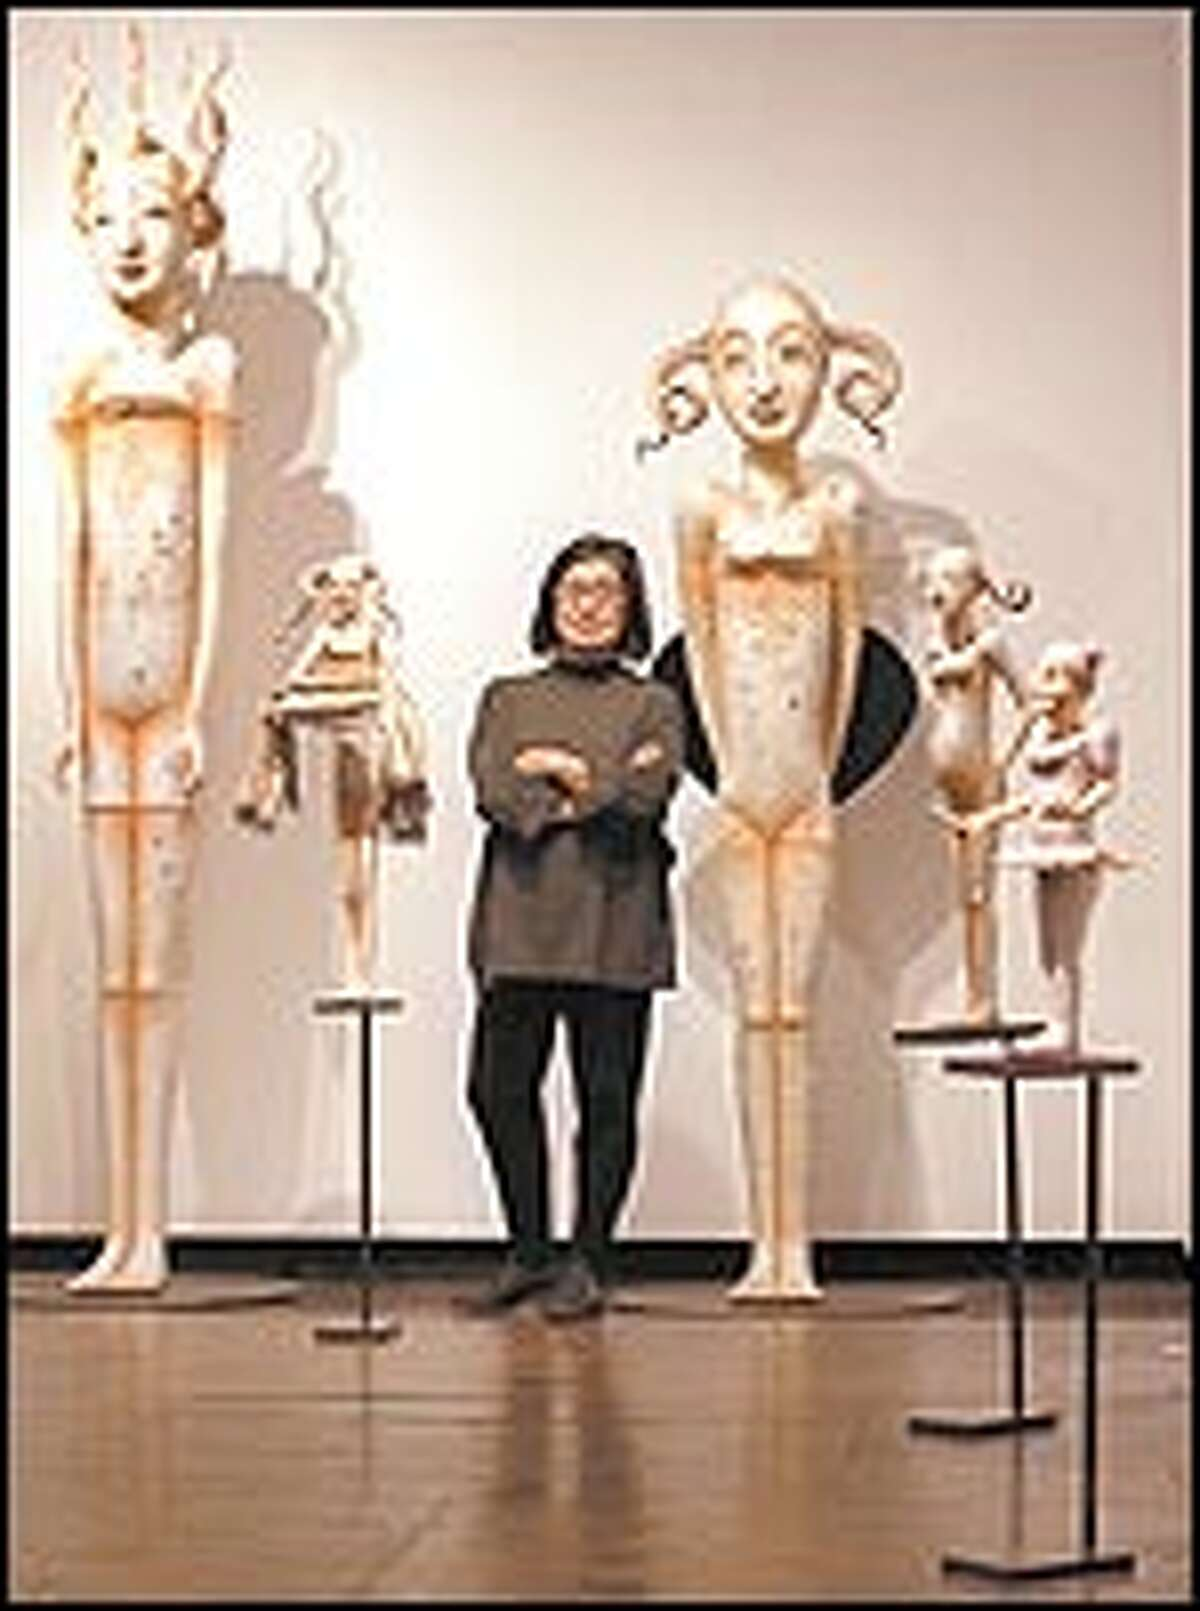 Time hasn't doused her creative fire: Patti Warashina poses with some of her lusty creations at the Howard House, her first solo show in 10 years.